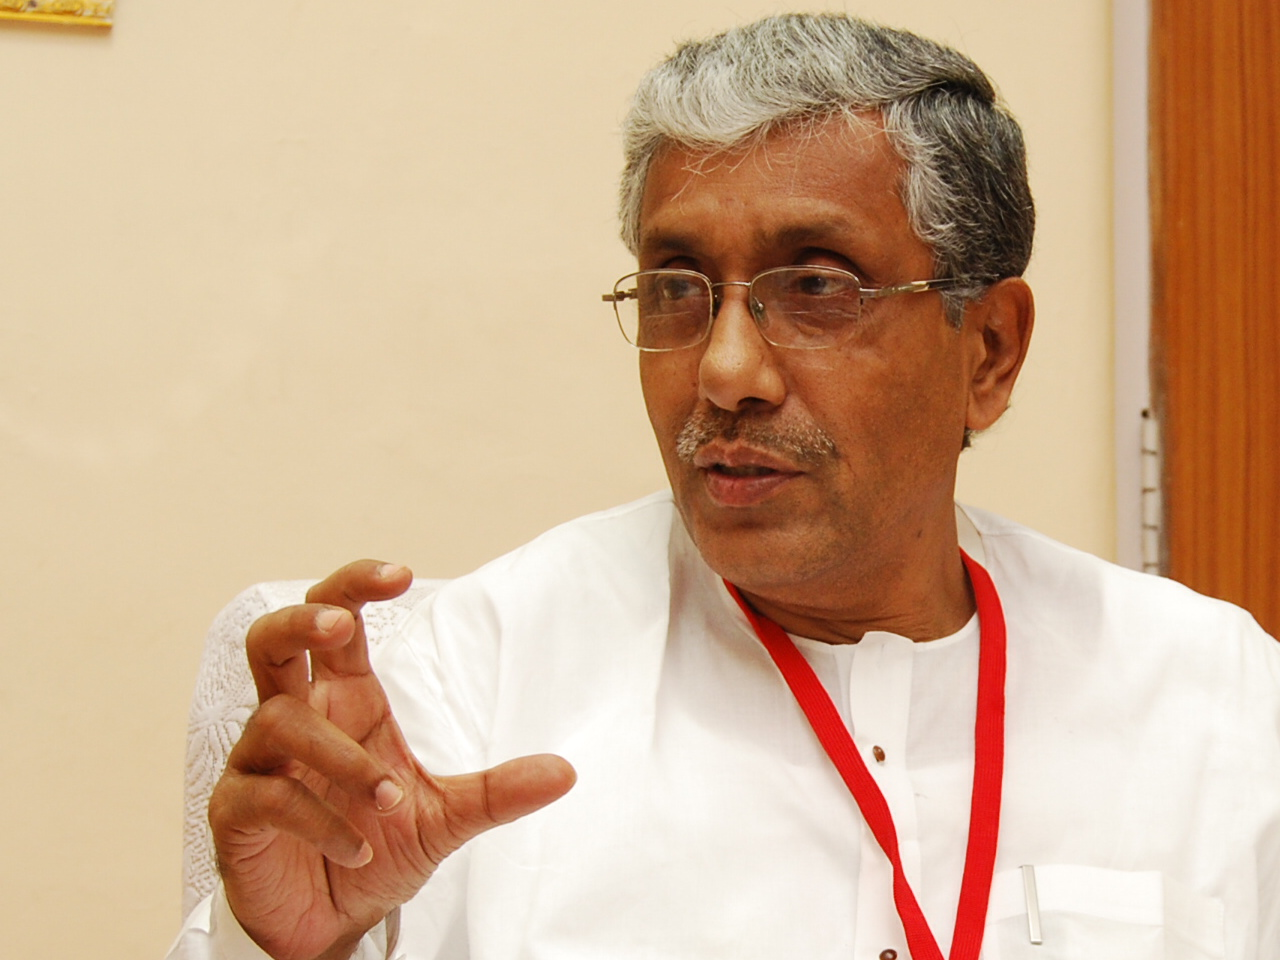 http://topnews.in/law/files/manik-sarkar_8.jpg